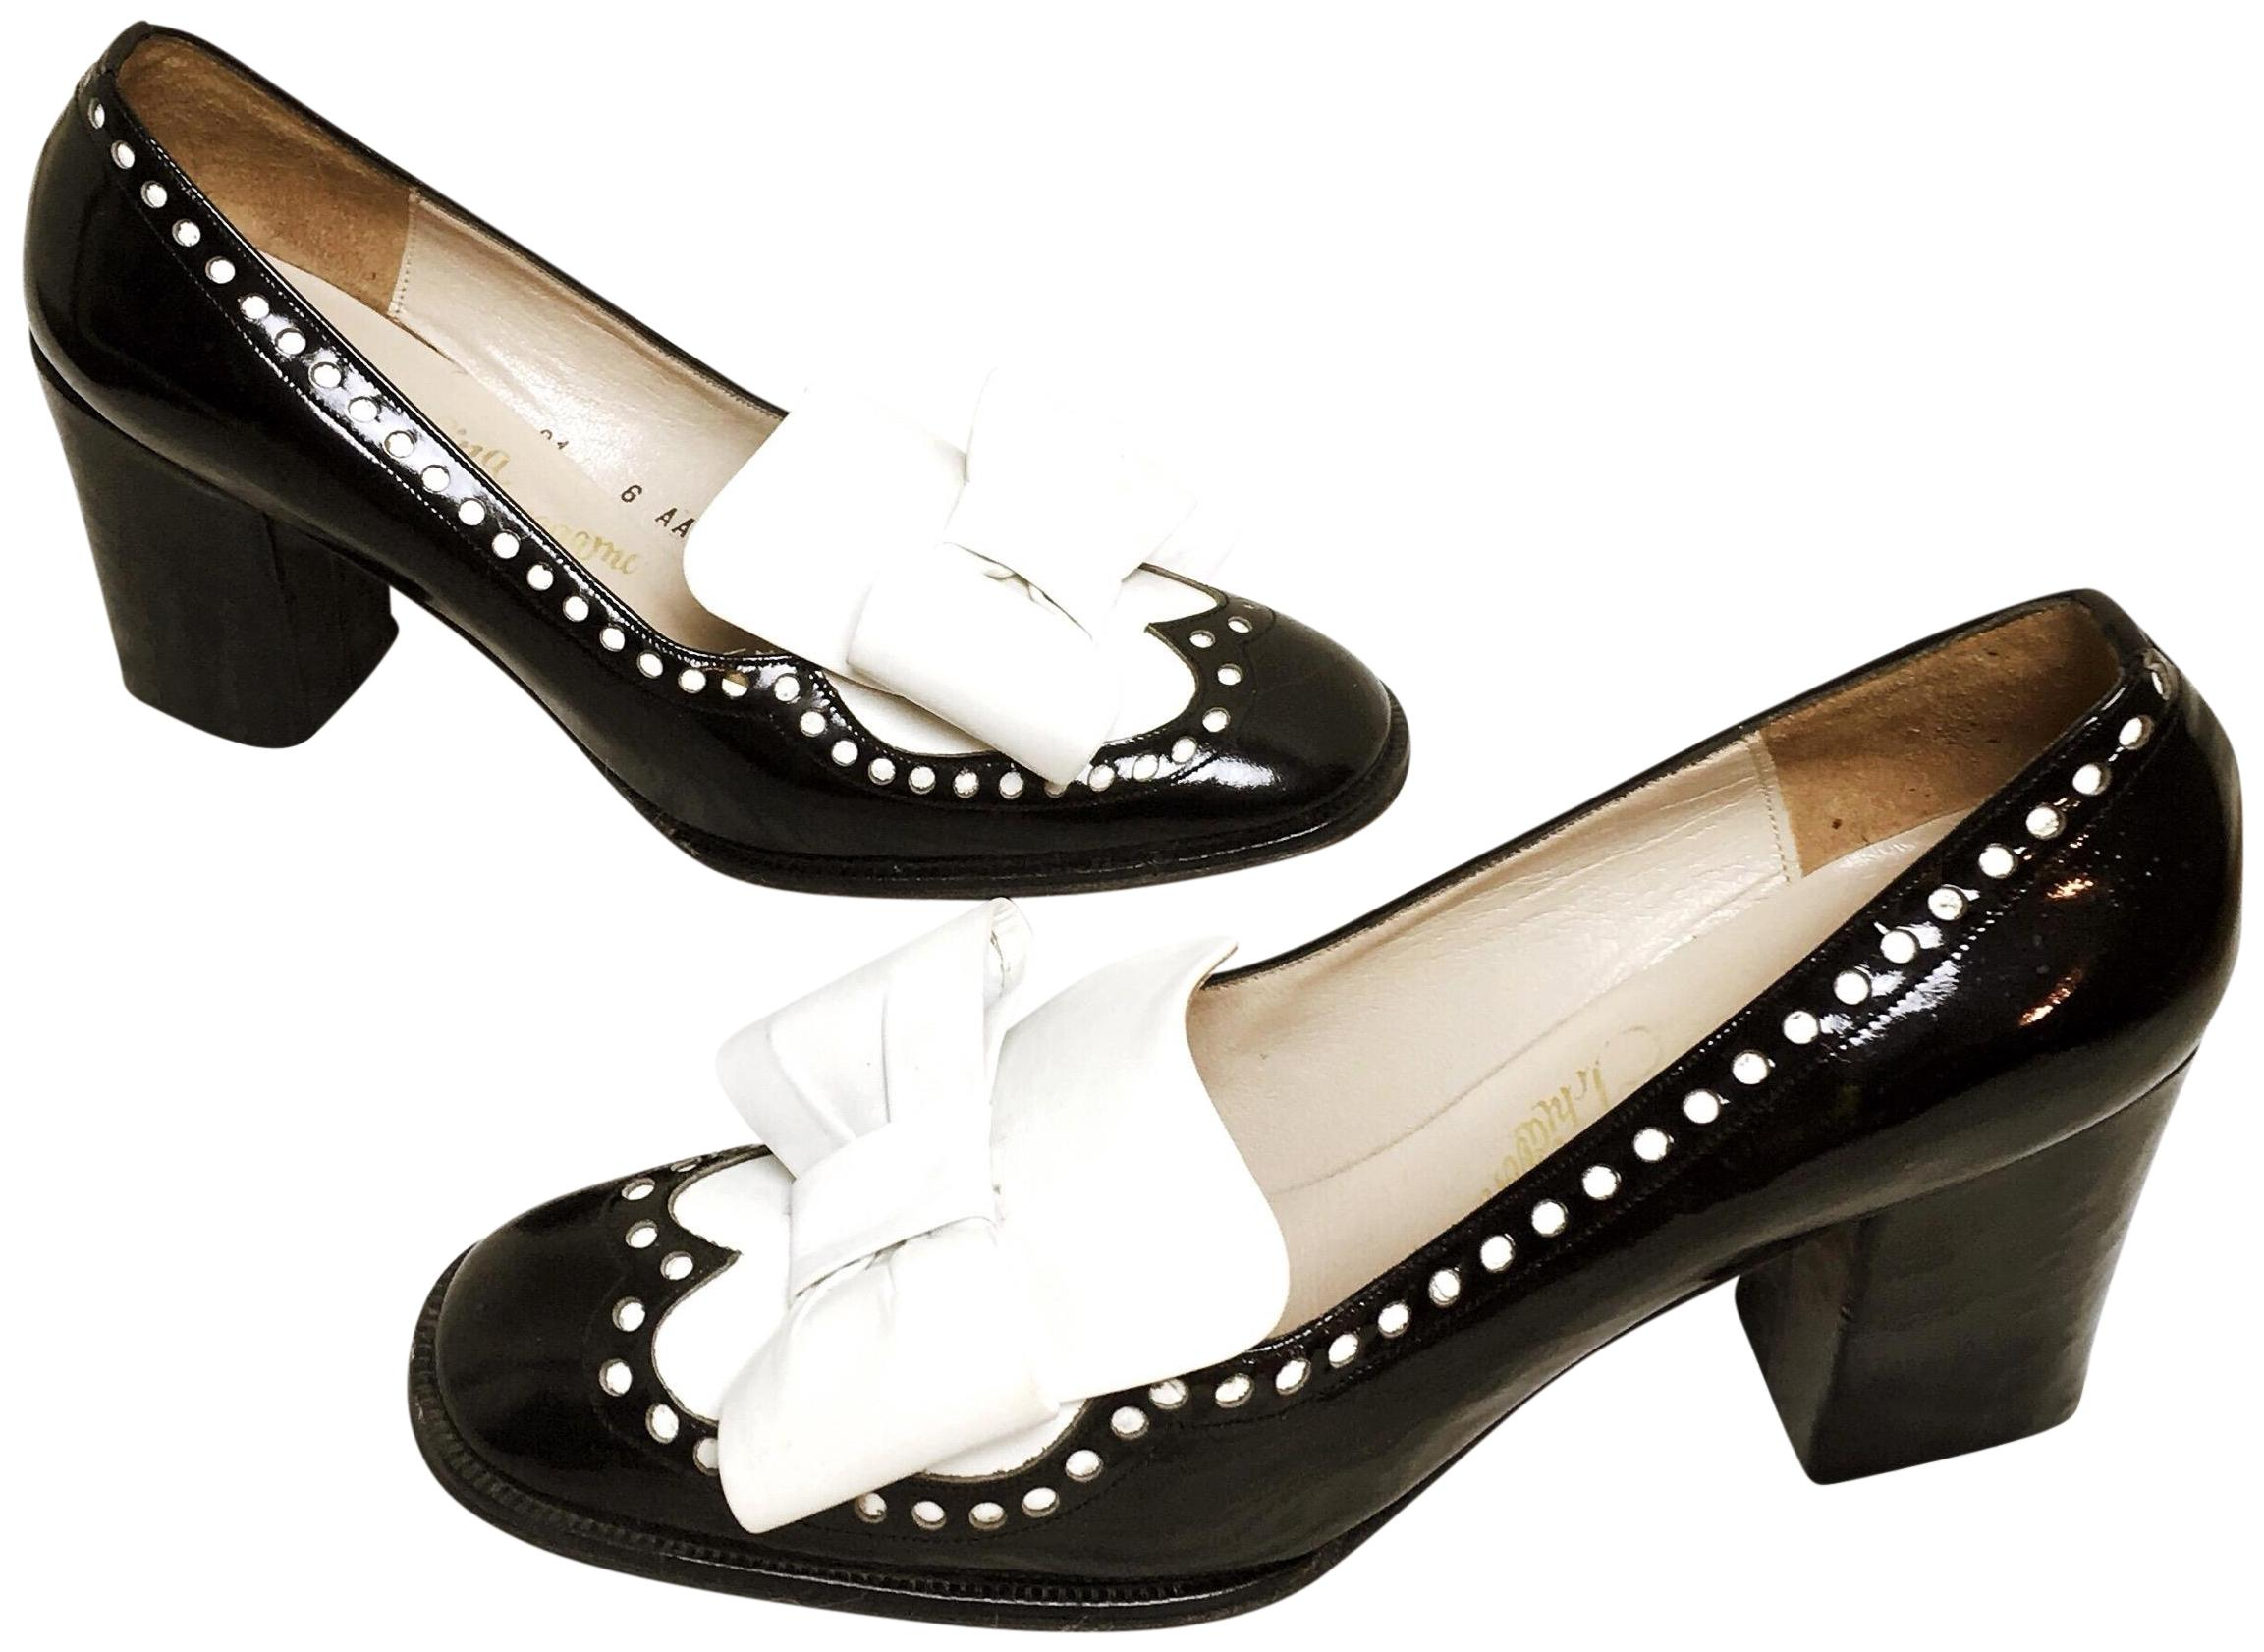 Salvatore Ferragamo Black Vintage Patent Leather Bow Embellished Patent Leather Loafers Flats Size US 6.5 Narrow (Aa, N)